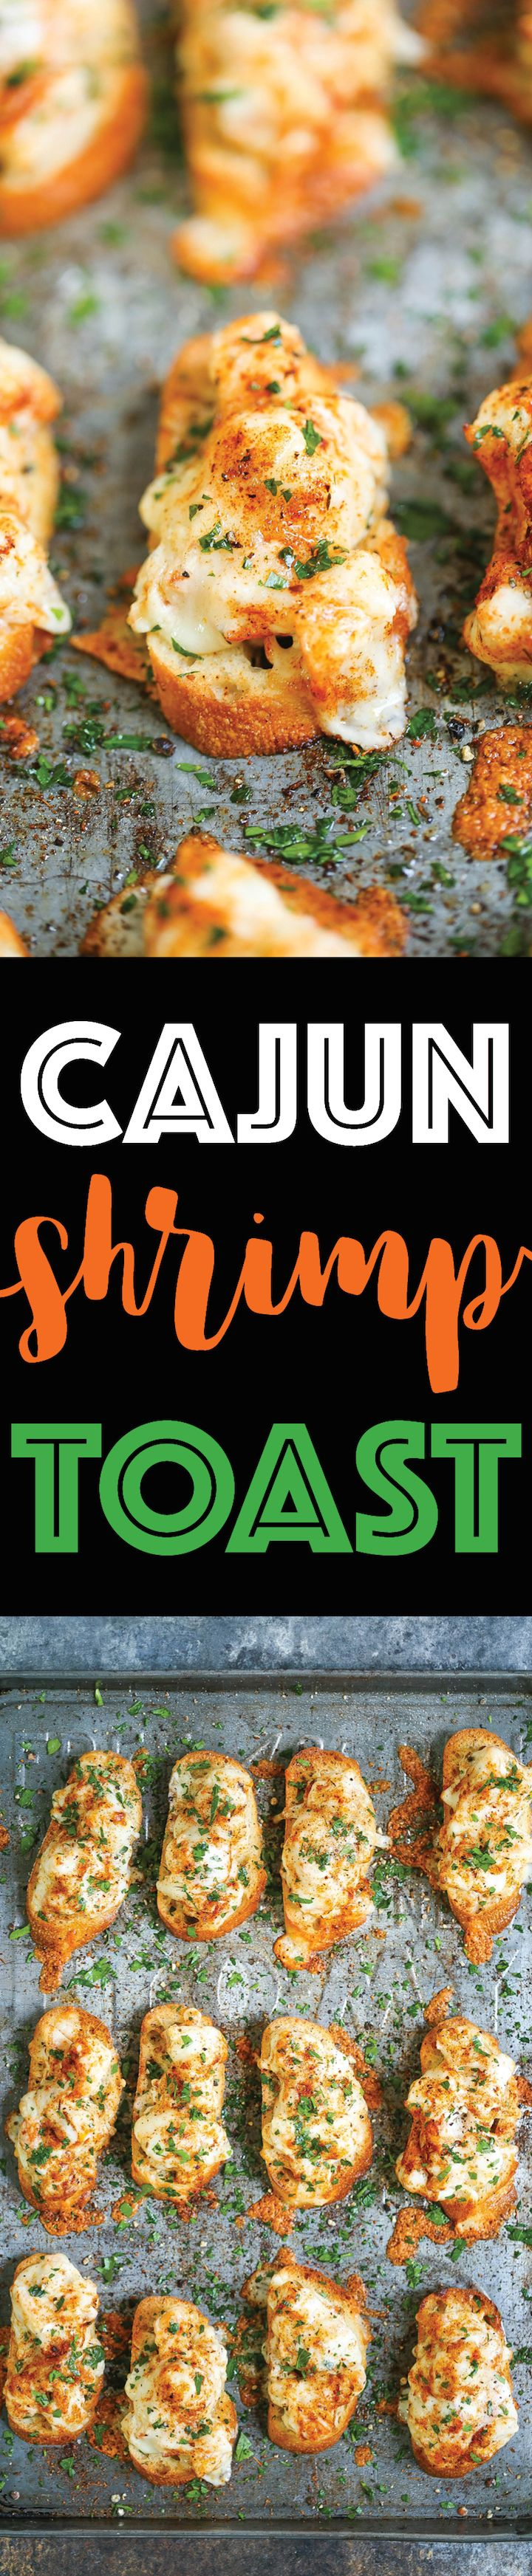 Cajun Shrimp Toast - Bite-sized SHRIMP TOAST! With the creamiest, cheesiest shrimp topping with Parmesan and mozzarella! You won't be able to stop at 1!